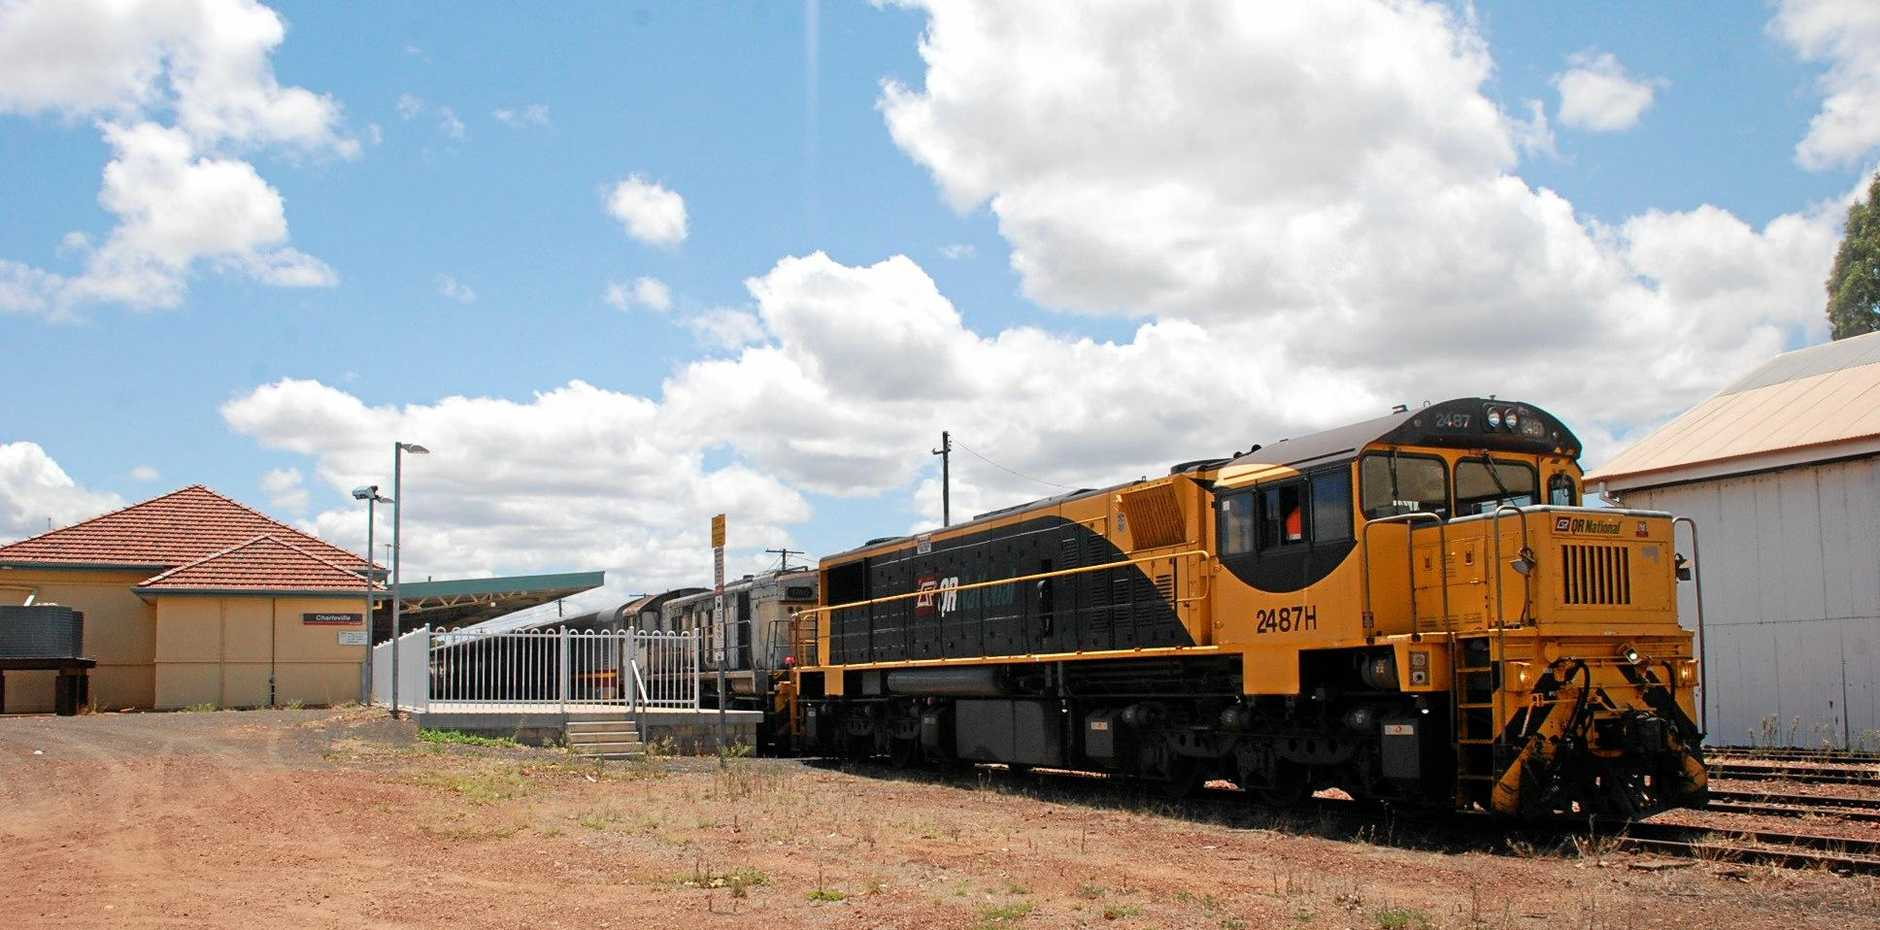 BACK ON TRACK: Discounted journeys are hoped to bring more visitors to Charleville over the summer months.